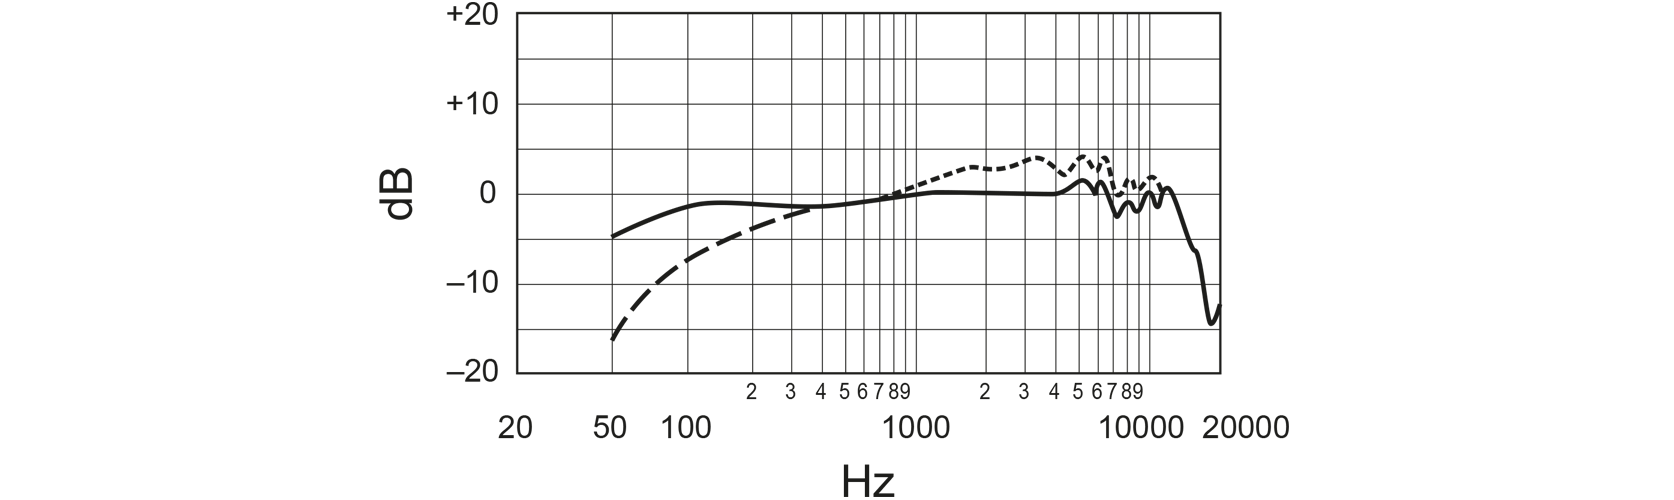 Shure SM7B studio microfoon Frequency Response Curve Image